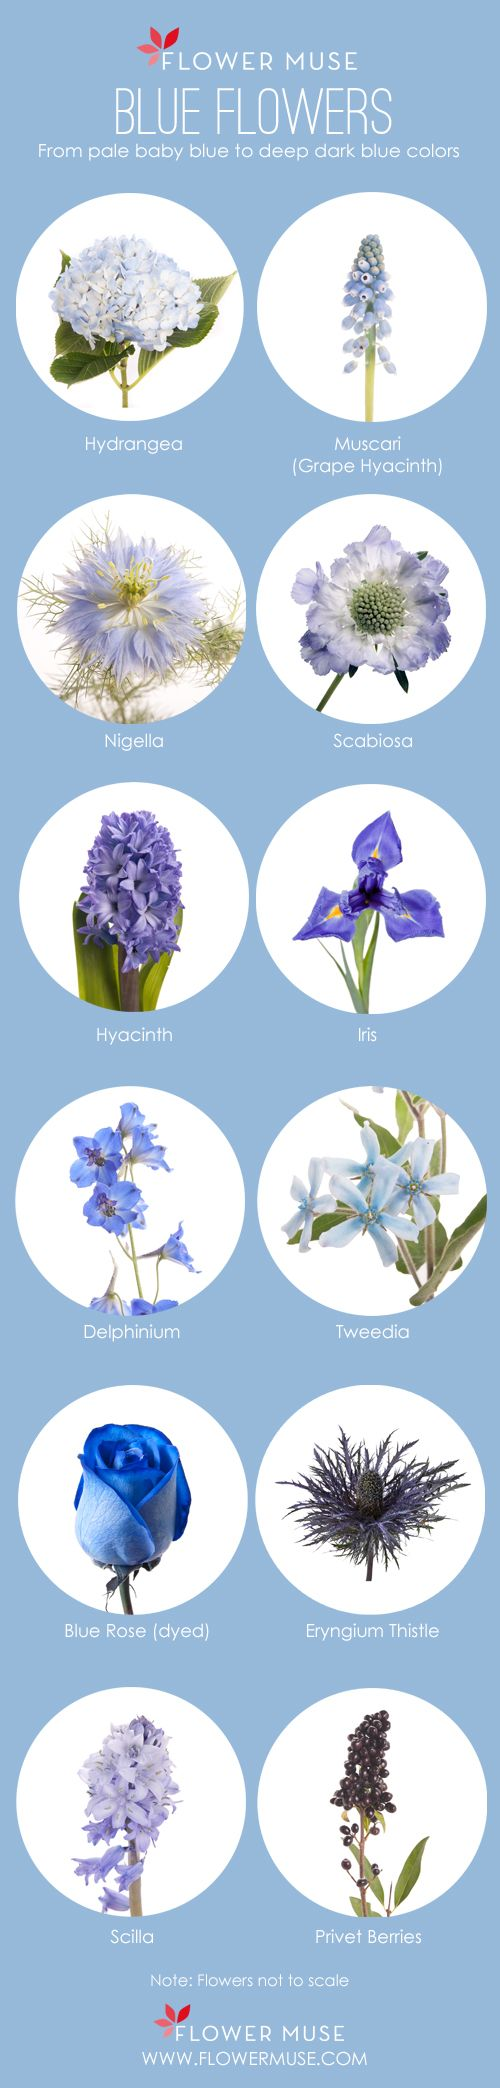 Our favorite blue flowers flower colors pinterest flowers great choices for blue flowers wedding color schemes bouquets that perfectly match your color palette izmirmasajfo